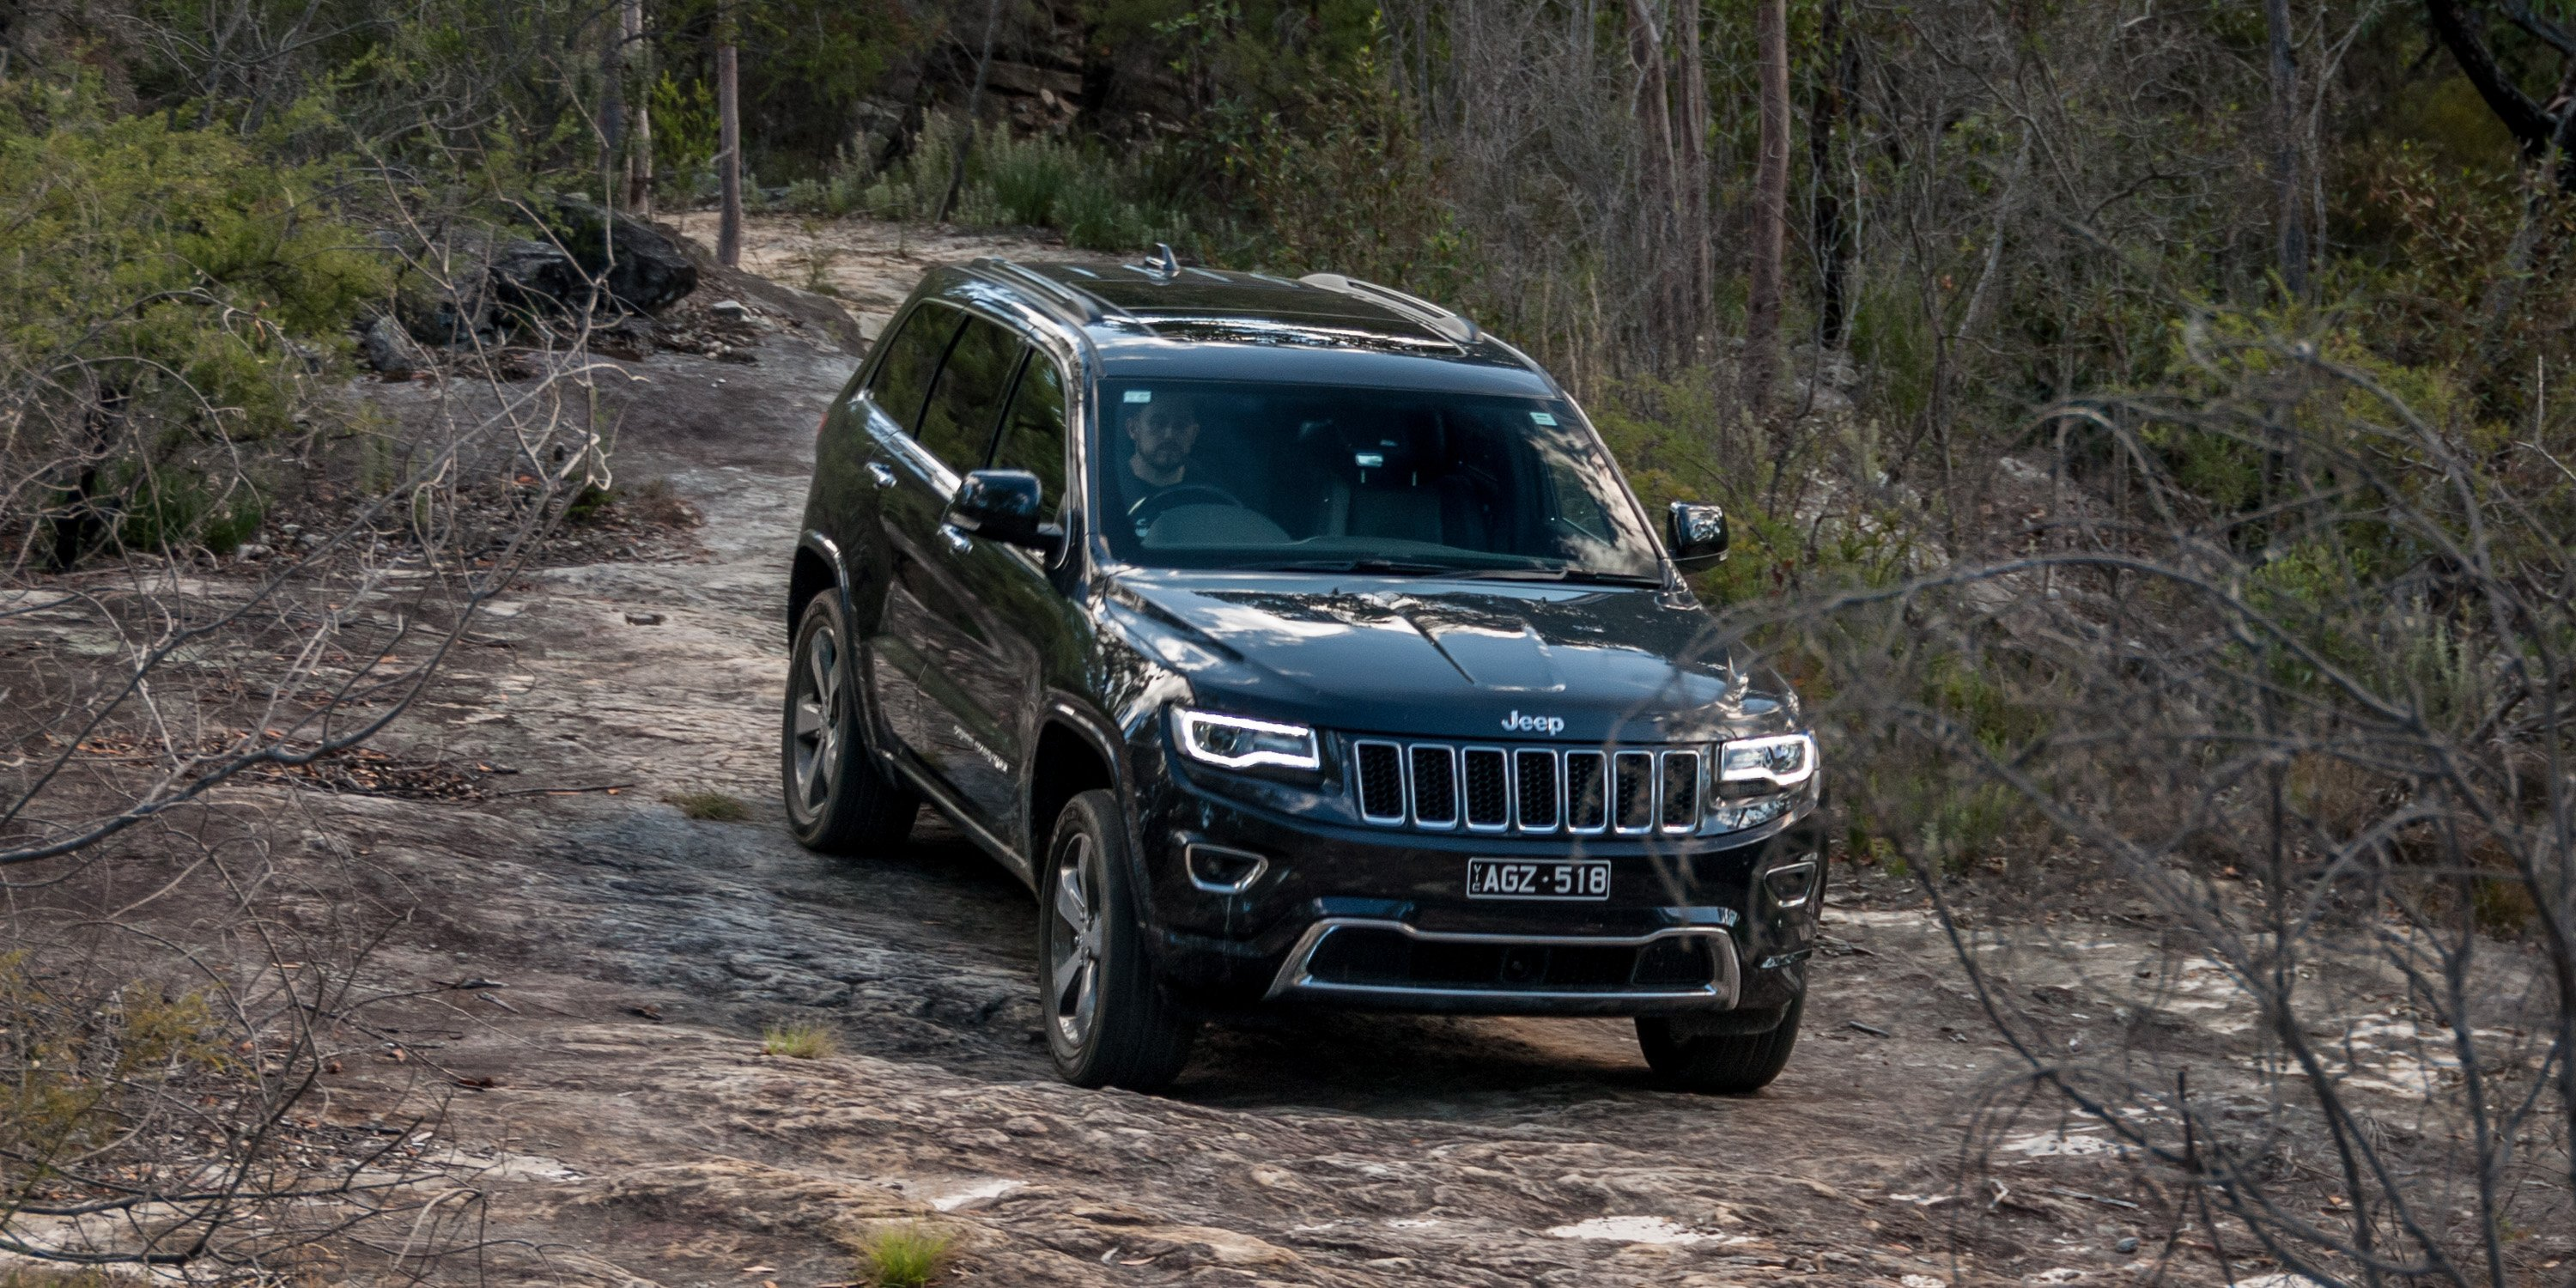 Jeep Grand Cherokee Overland >> 2016 Jeep Grand Cherokee Overland Review - photos | CarAdvice